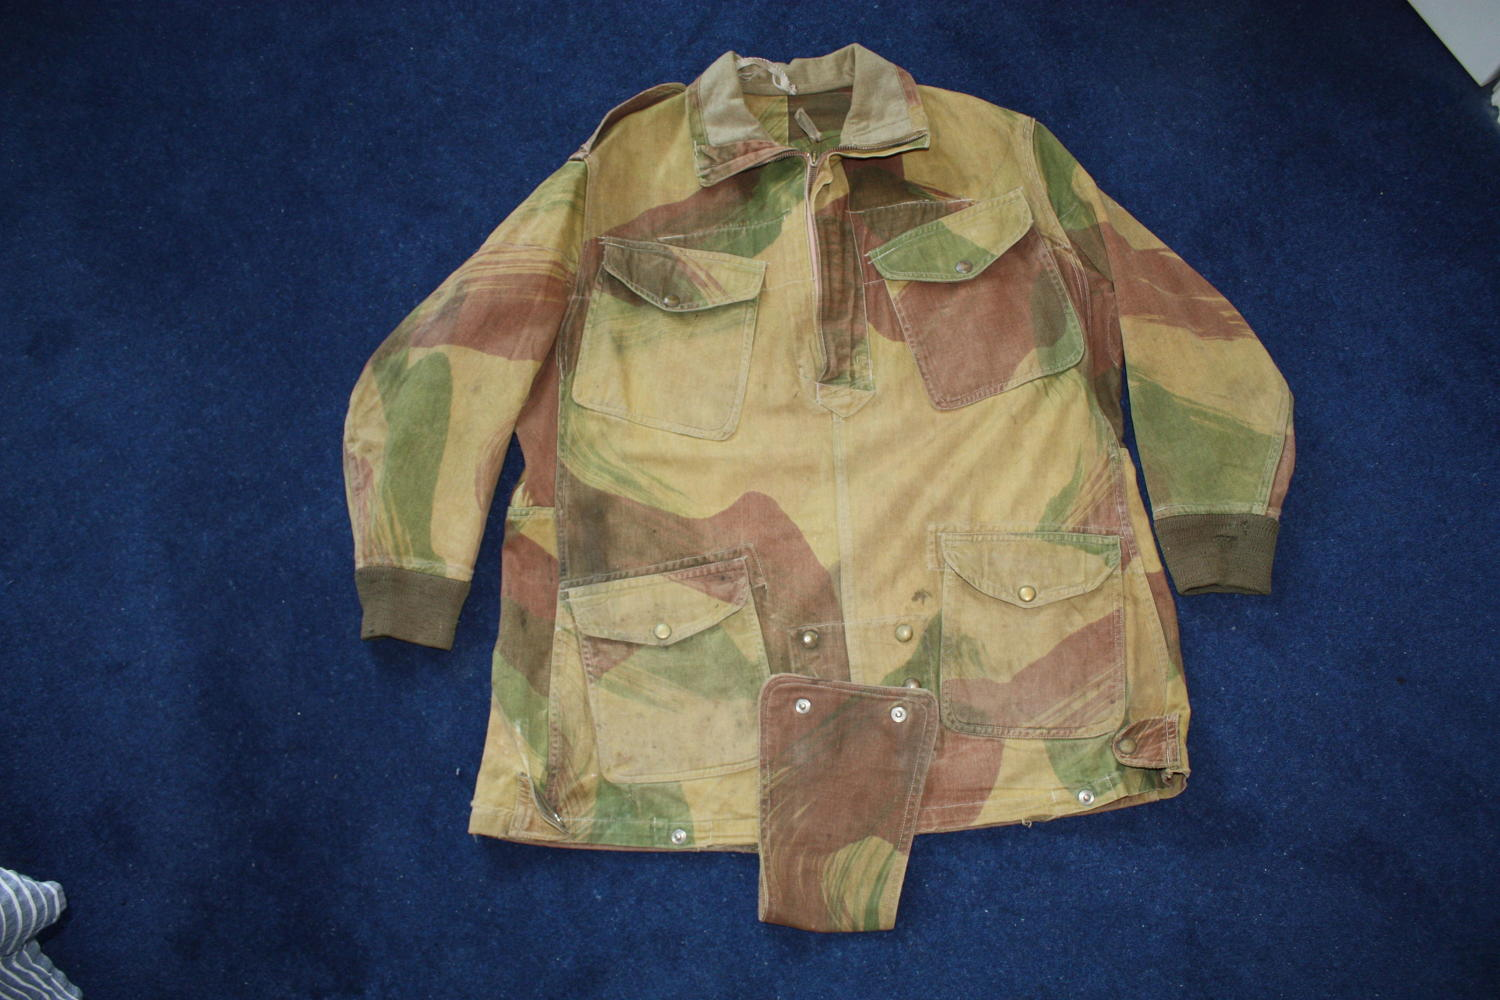 British Army Parachute/Airborne Troops Denison Smock. Post WW2.